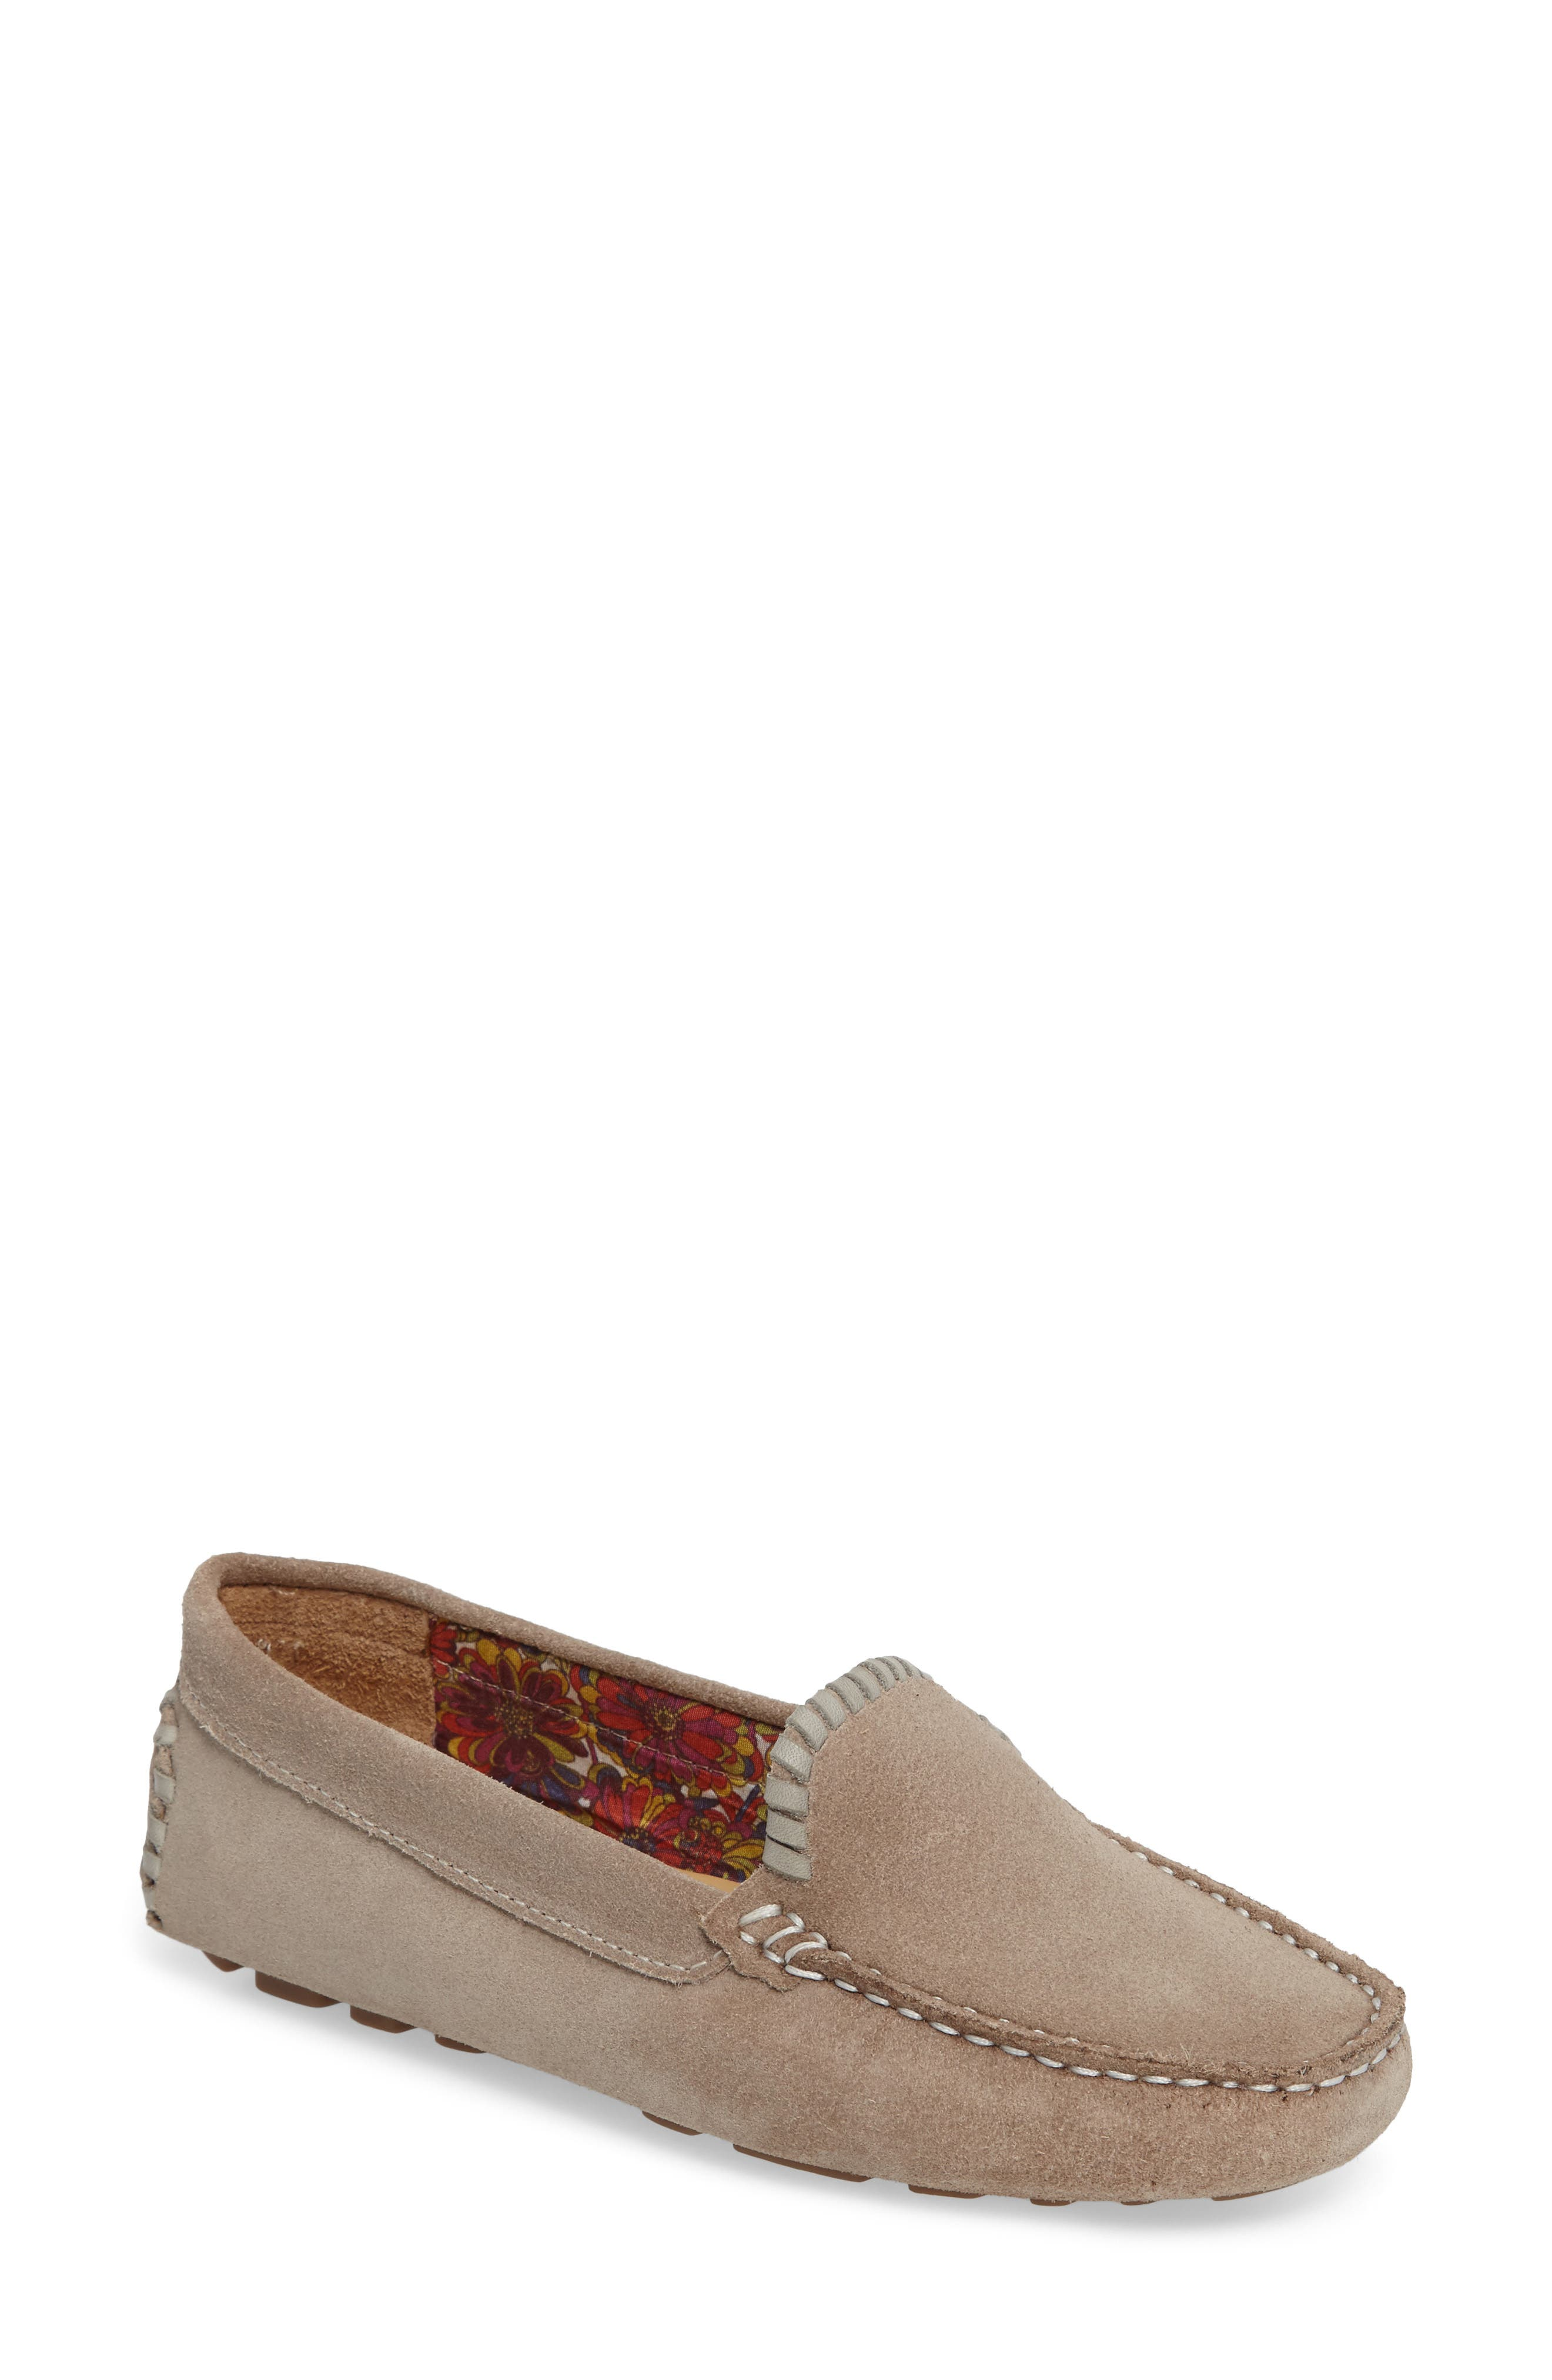 Taylor Driving Loafer,                             Main thumbnail 1, color,                             Dove Grey Suede